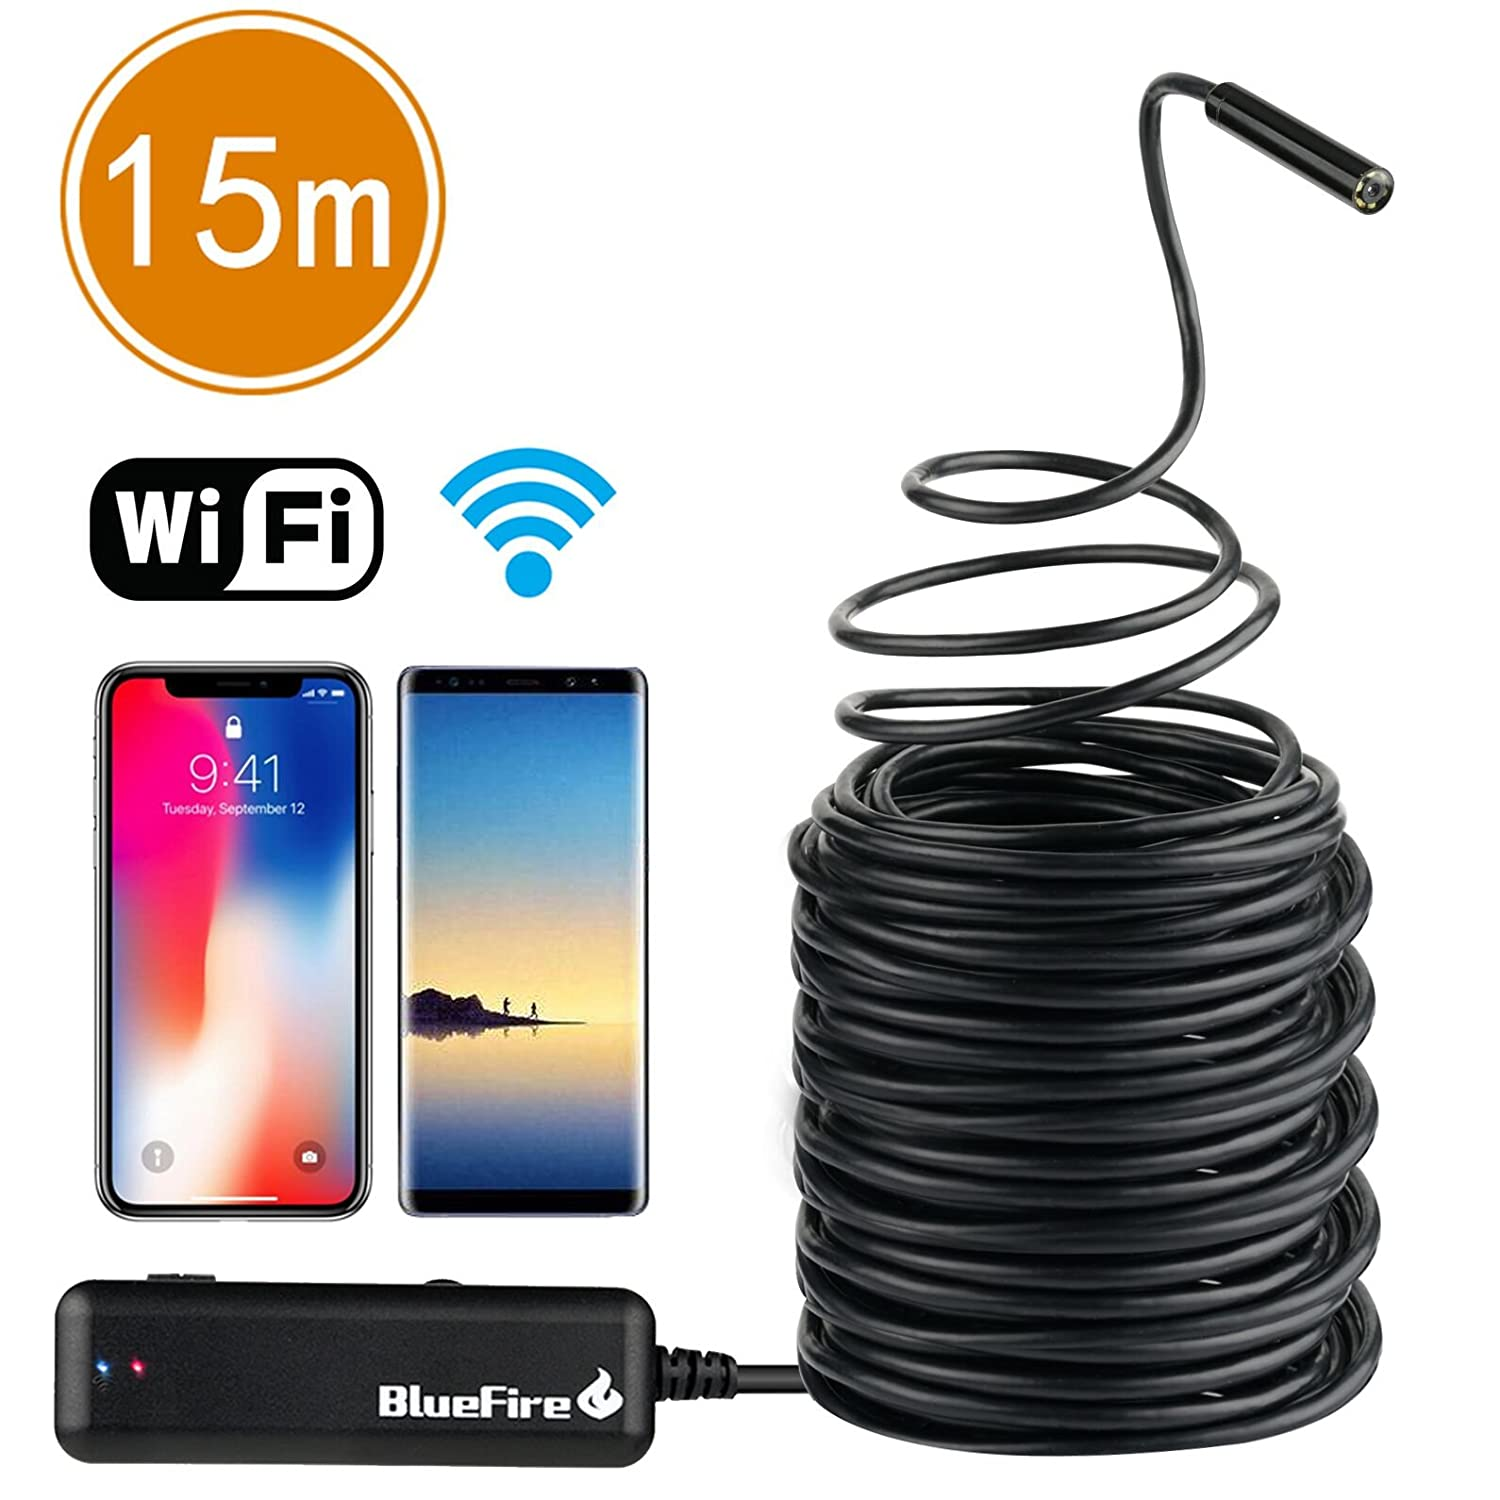 2-5-10m Red 2-in-1 Android Endoscope Camera Connector Android Borescope Inspection Camera For Car Repairing Pipe Examine Pc To Be Distributed All Over The World Security & Protection